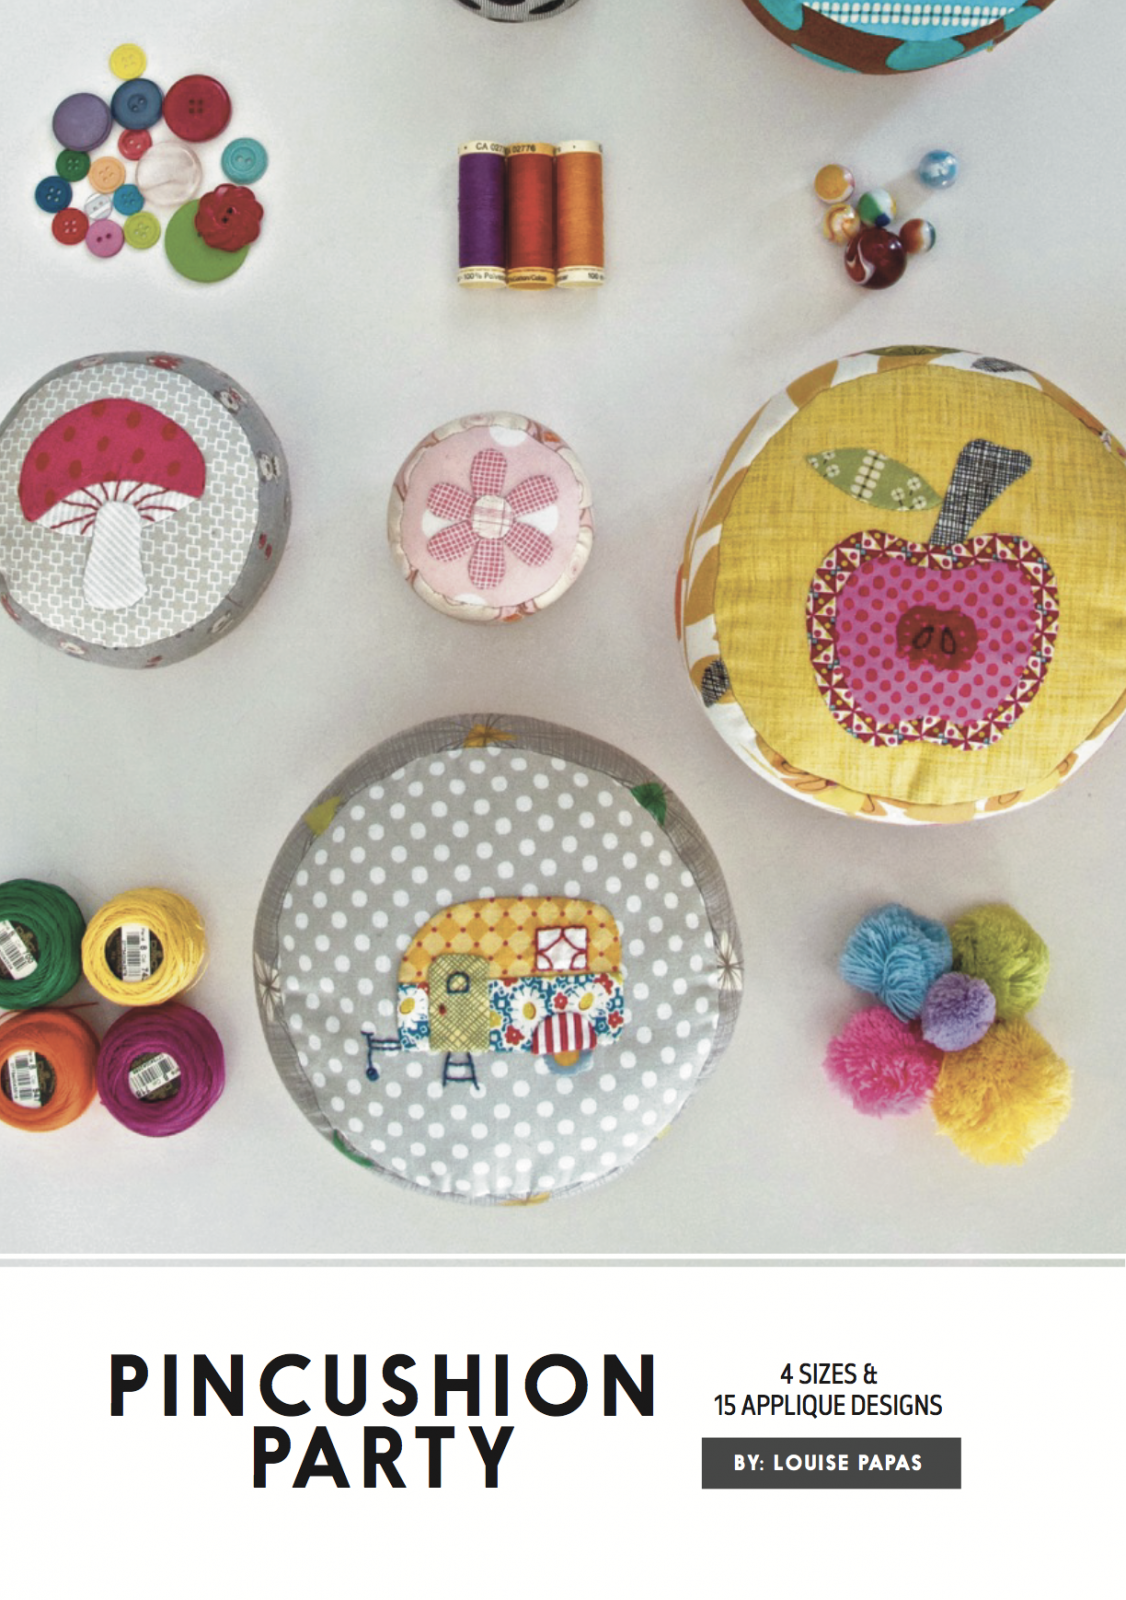 Pincushion Party Pattern by Louise Papas